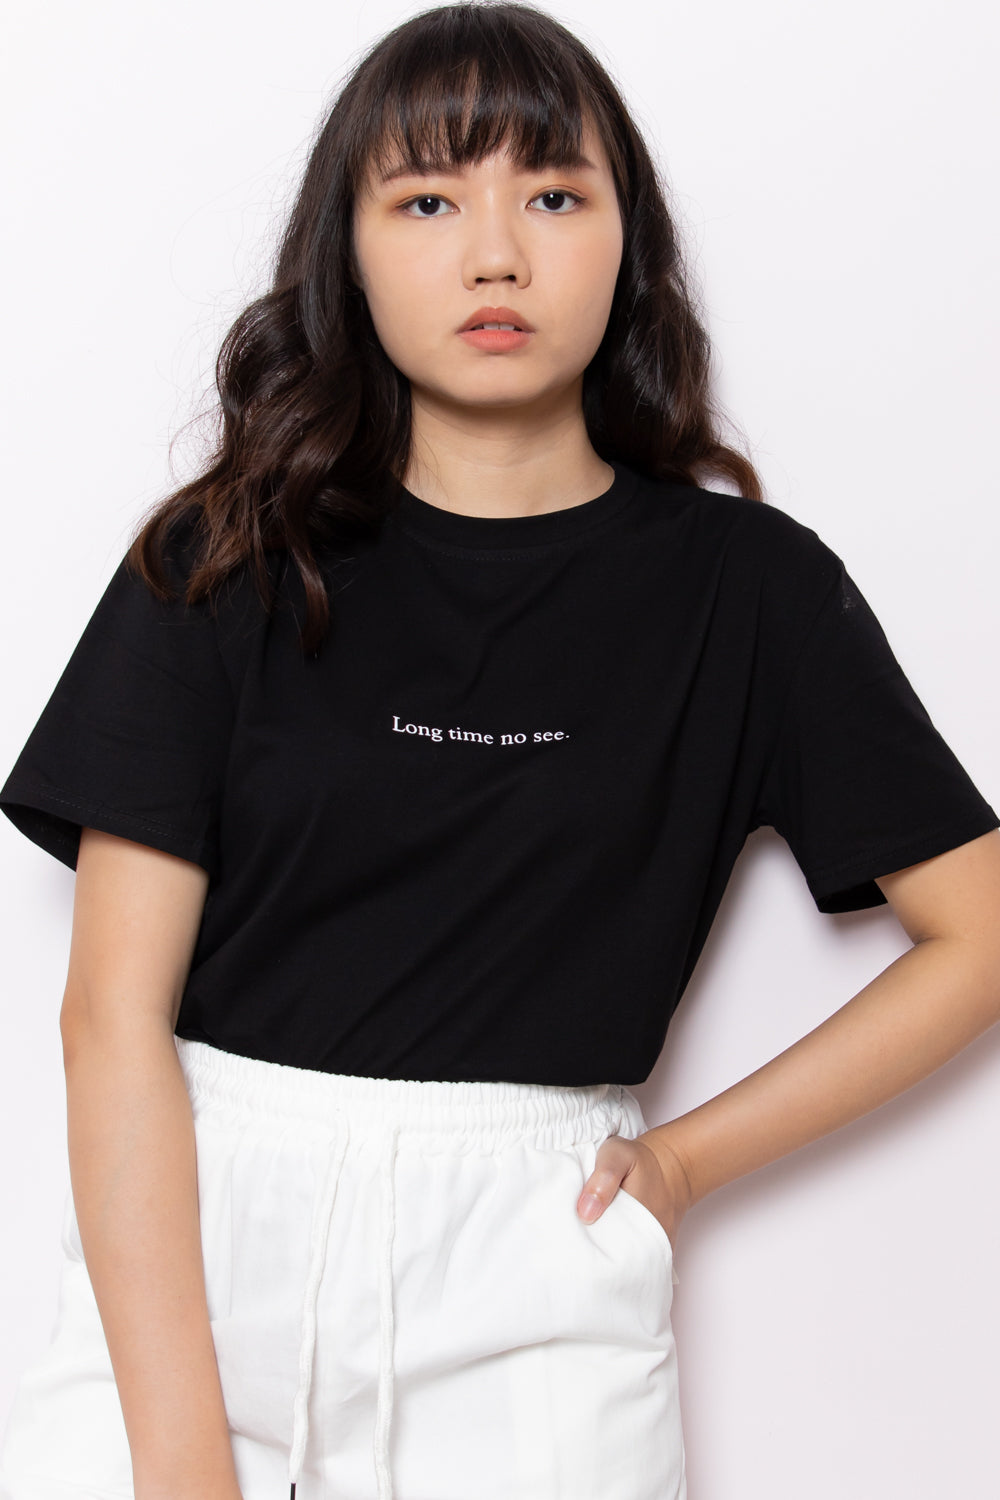 *Restocked* Long Time No See Graphic Slogan Tee in Black - Three One Duo